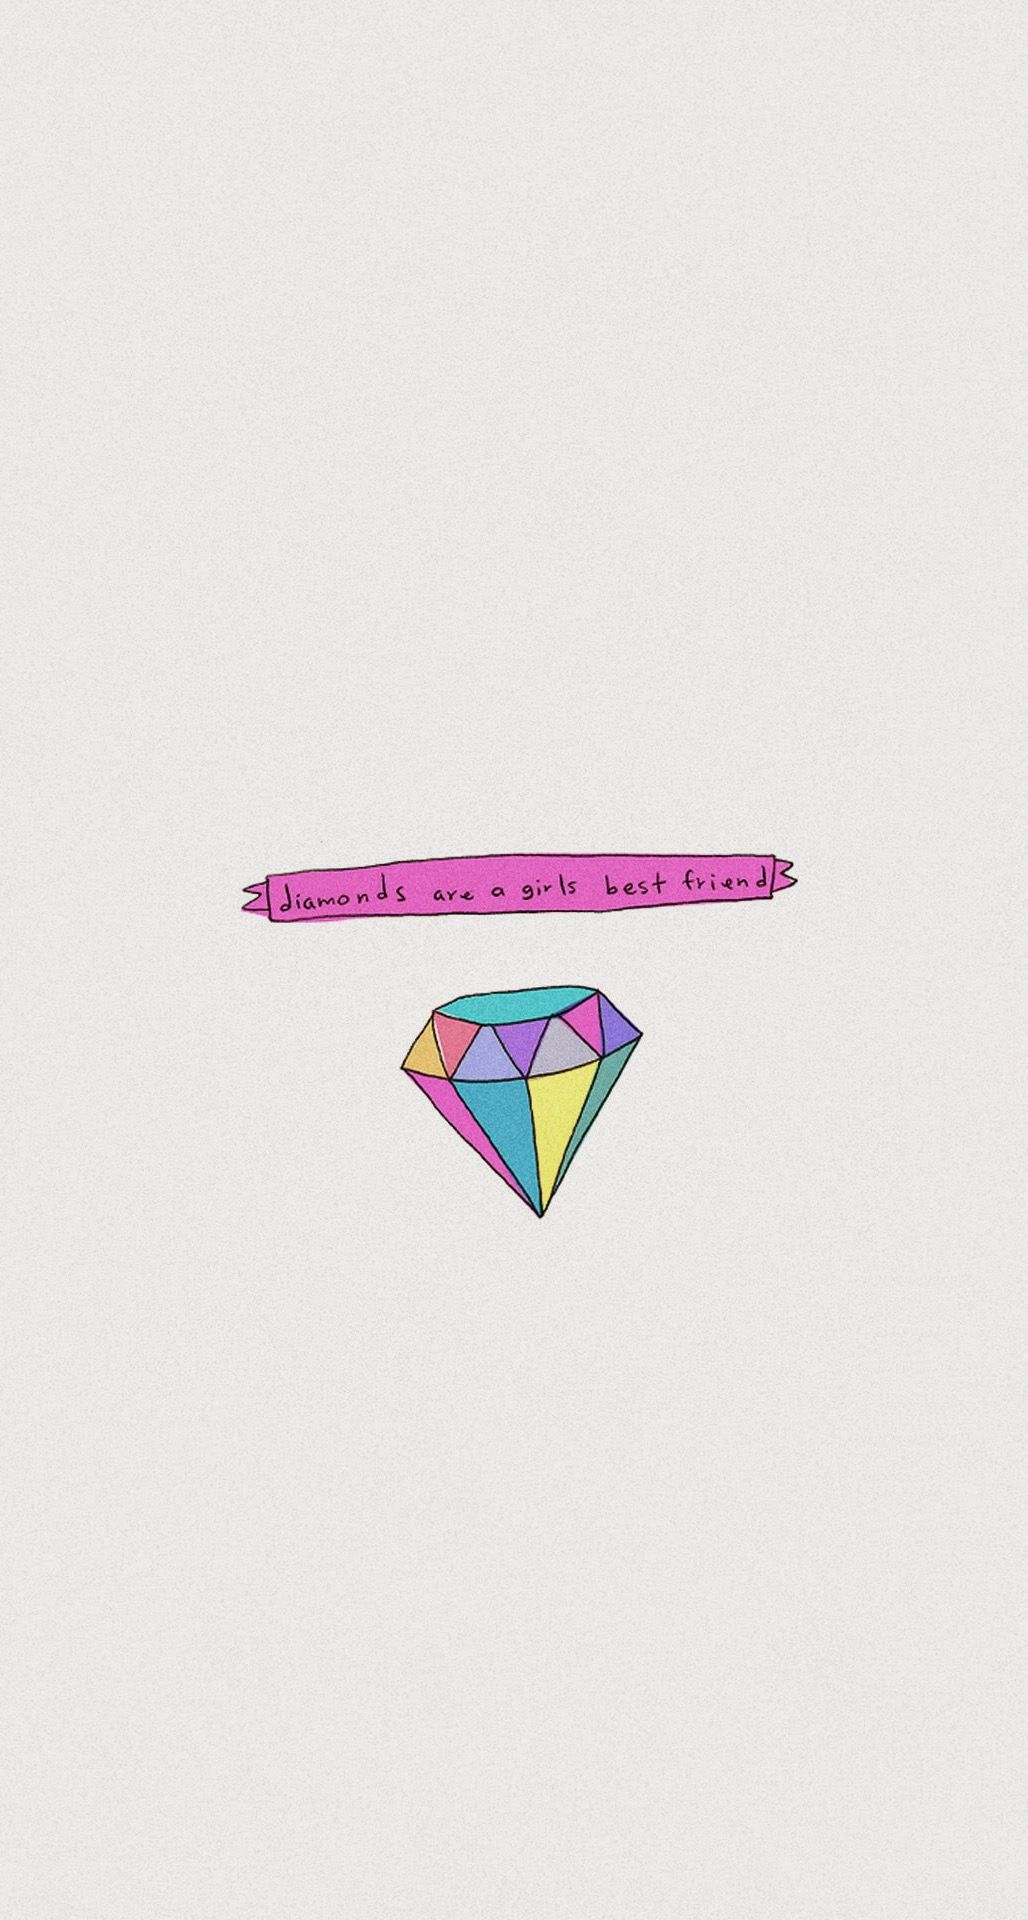 Wallpaper iphone pastel hd - Diamonds Are A Girls Best Friend Iphone 6 Plus Hd Wallpaper